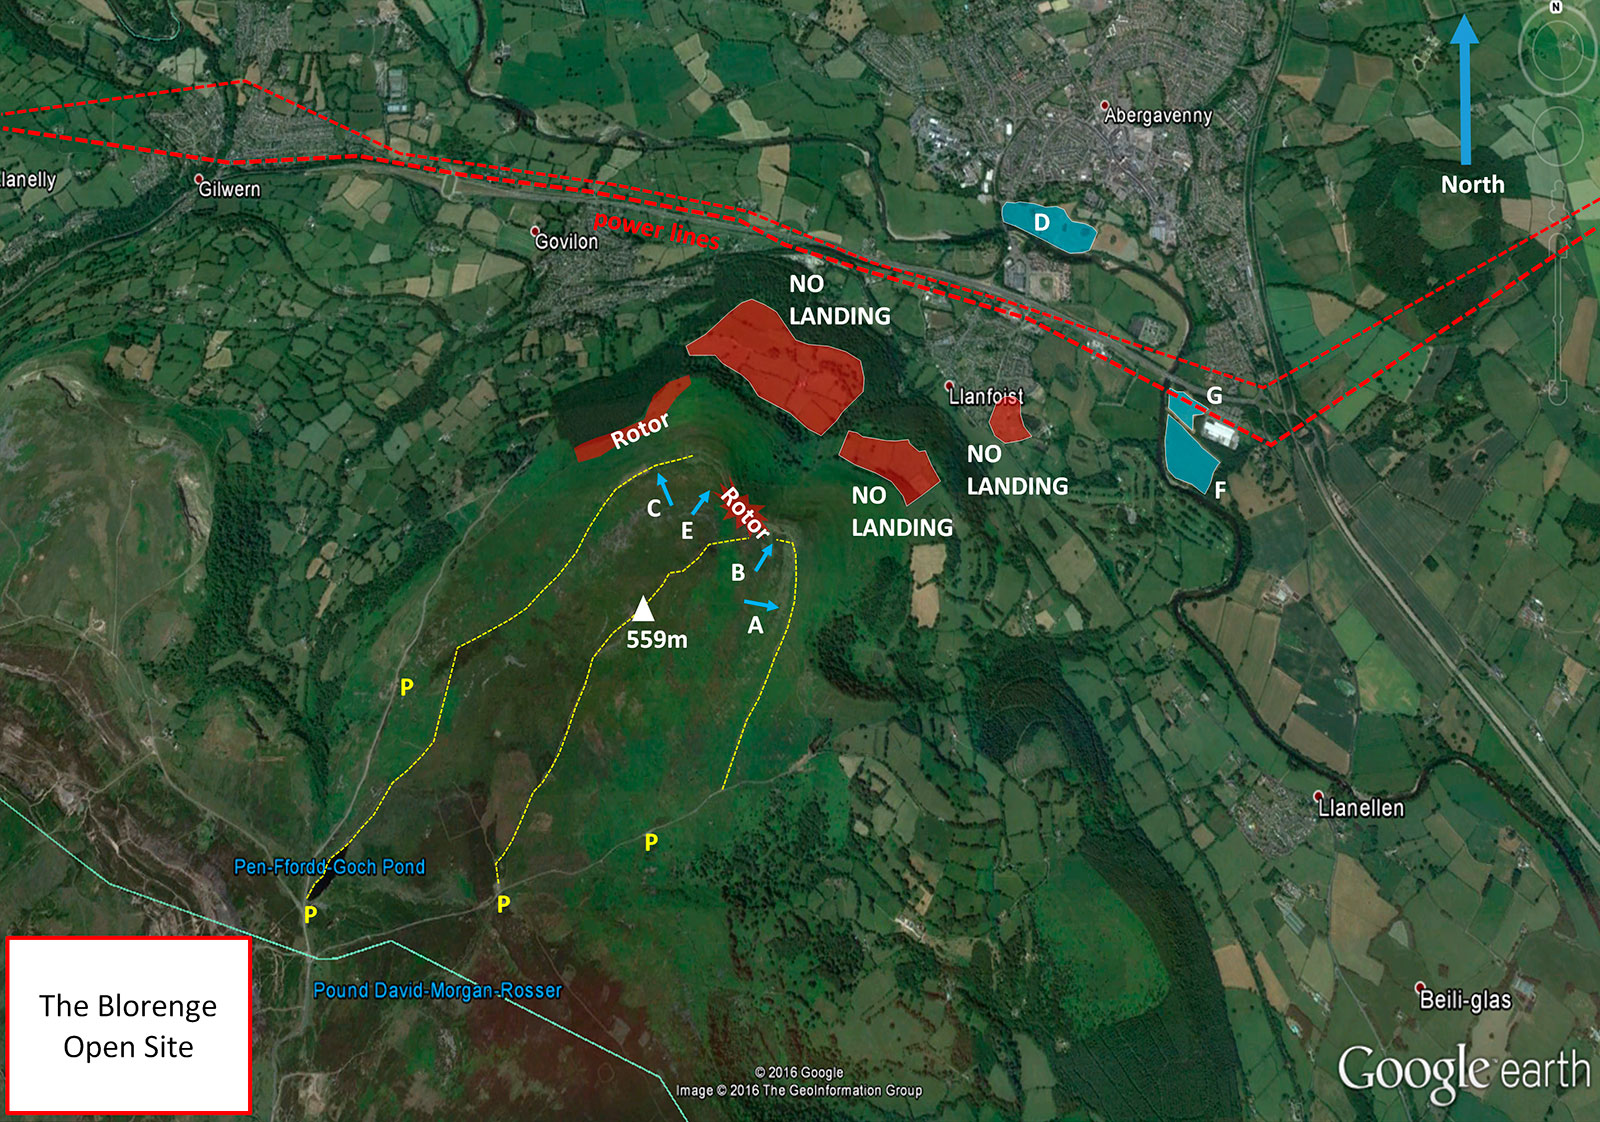 blorenge-site-image-map